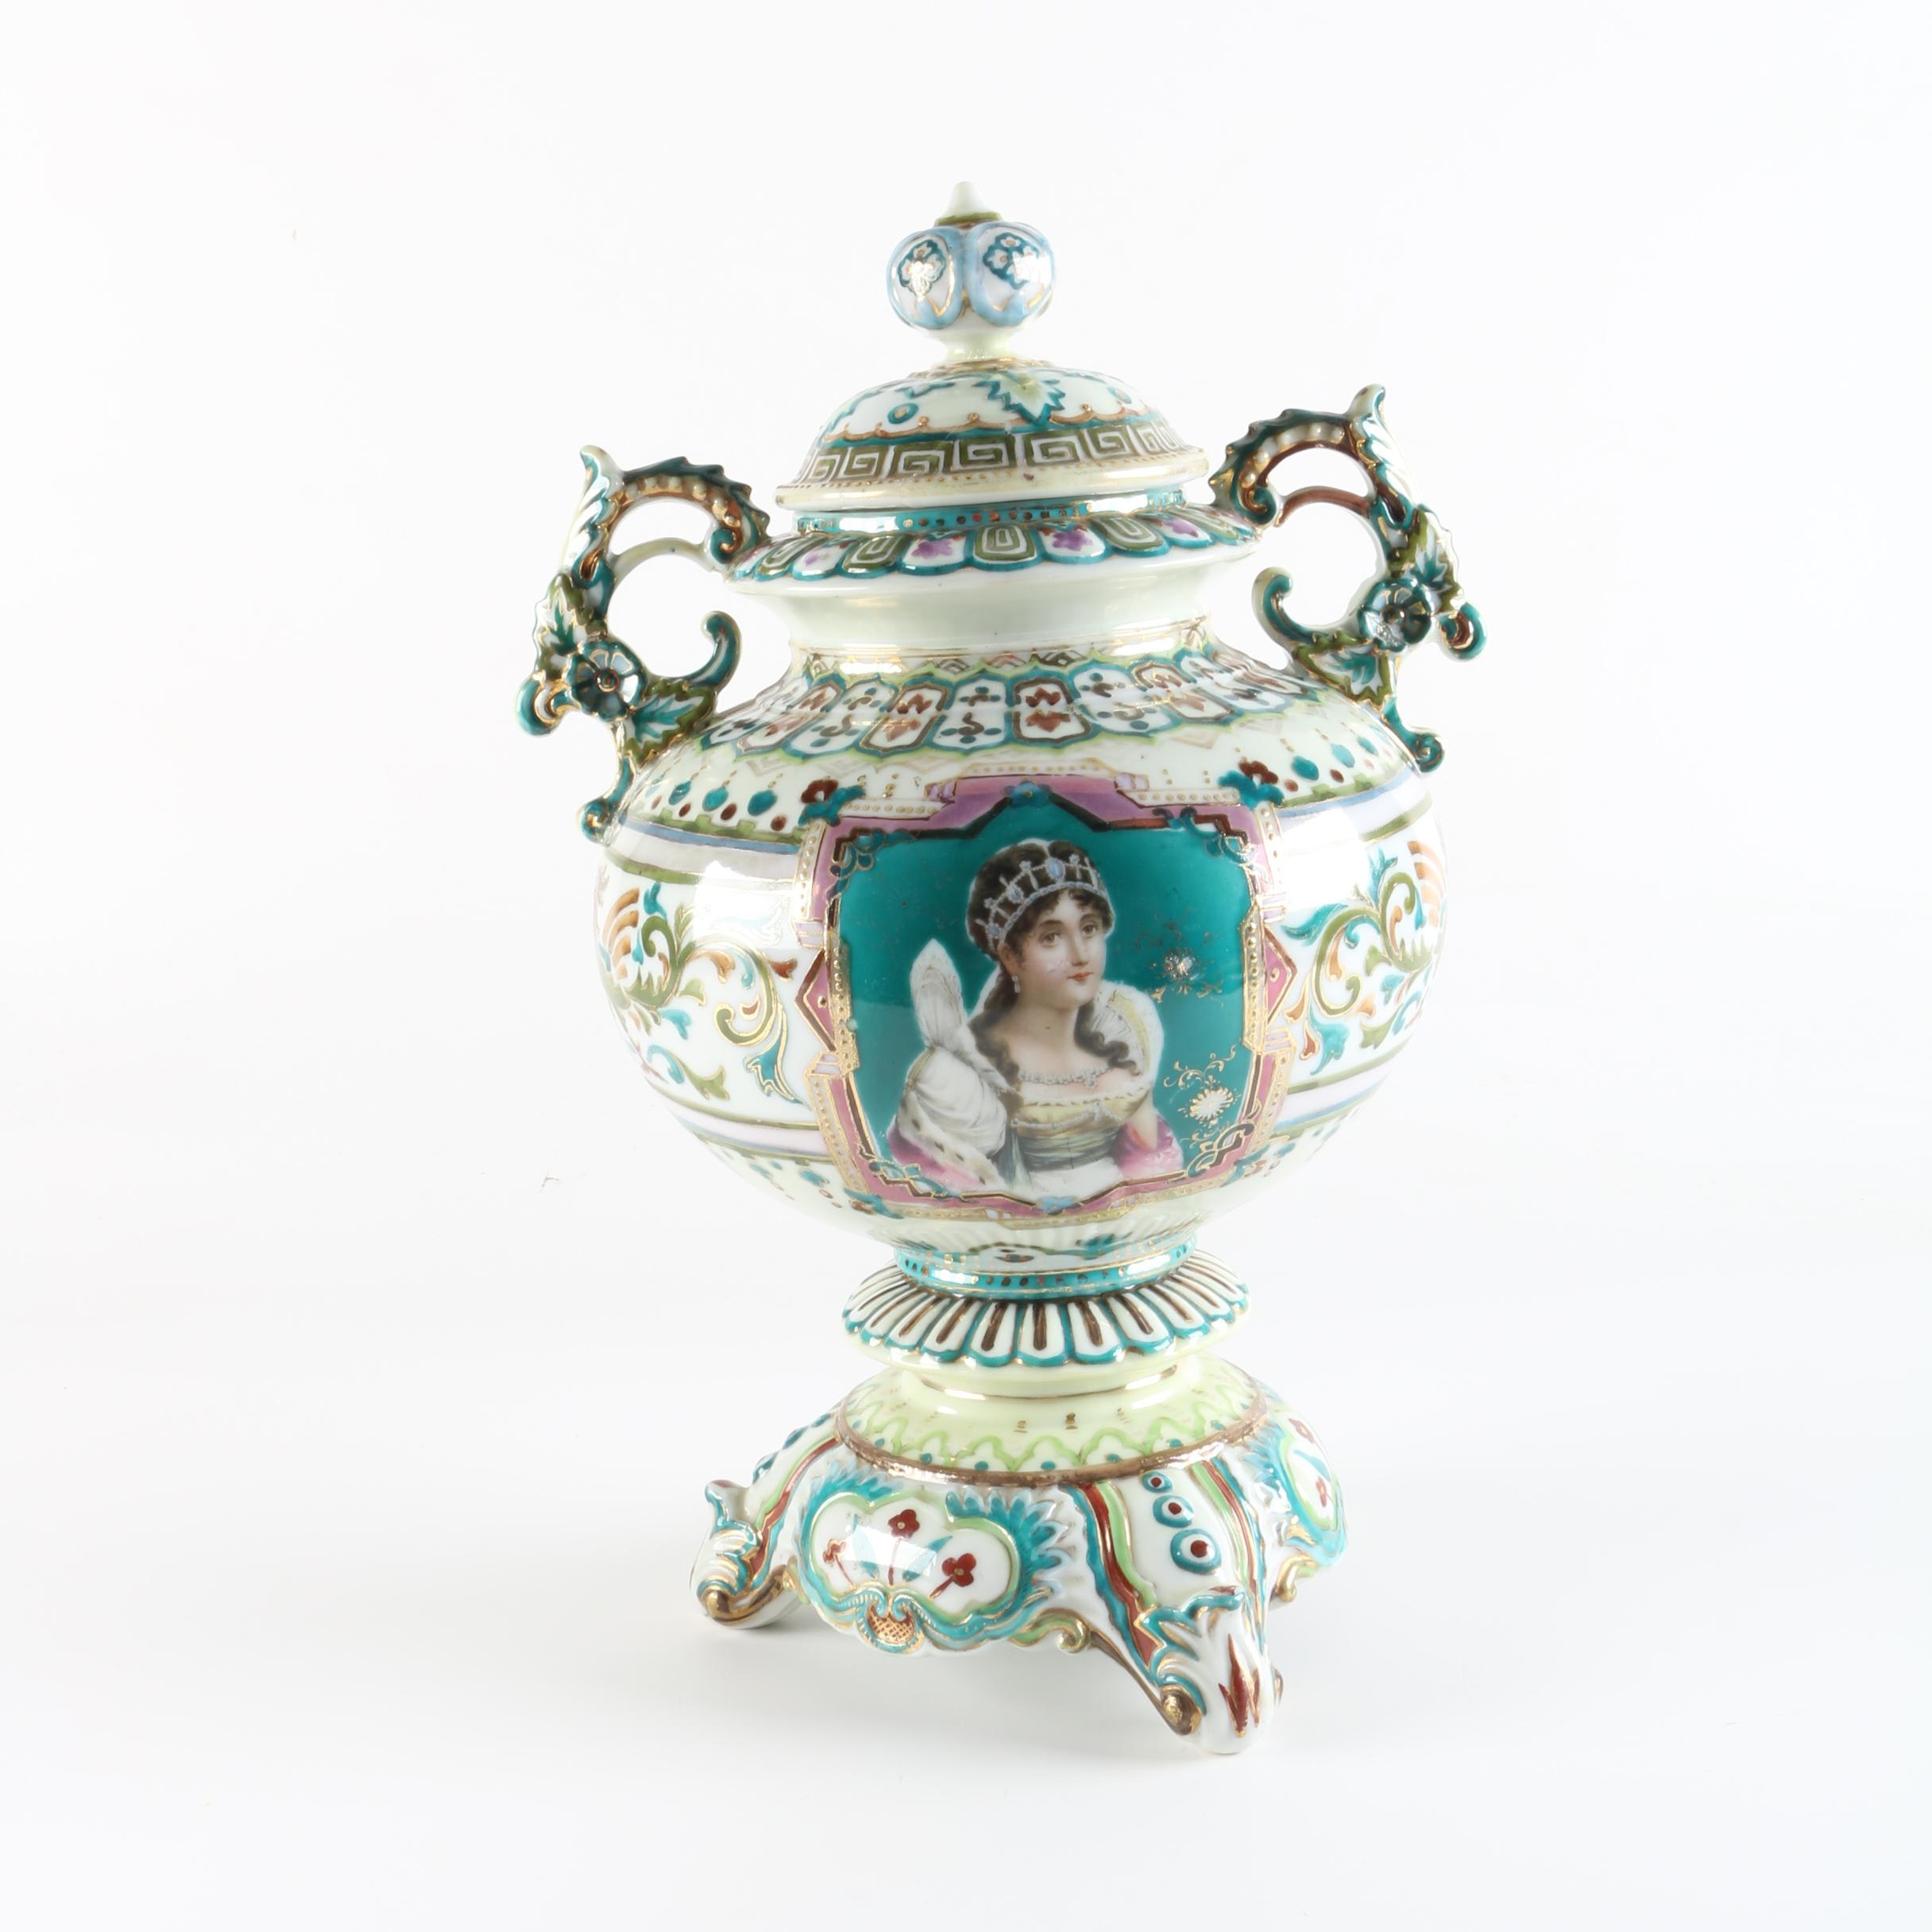 20th Century Porcelain Lidded Urn Depicting The Empress Josephine